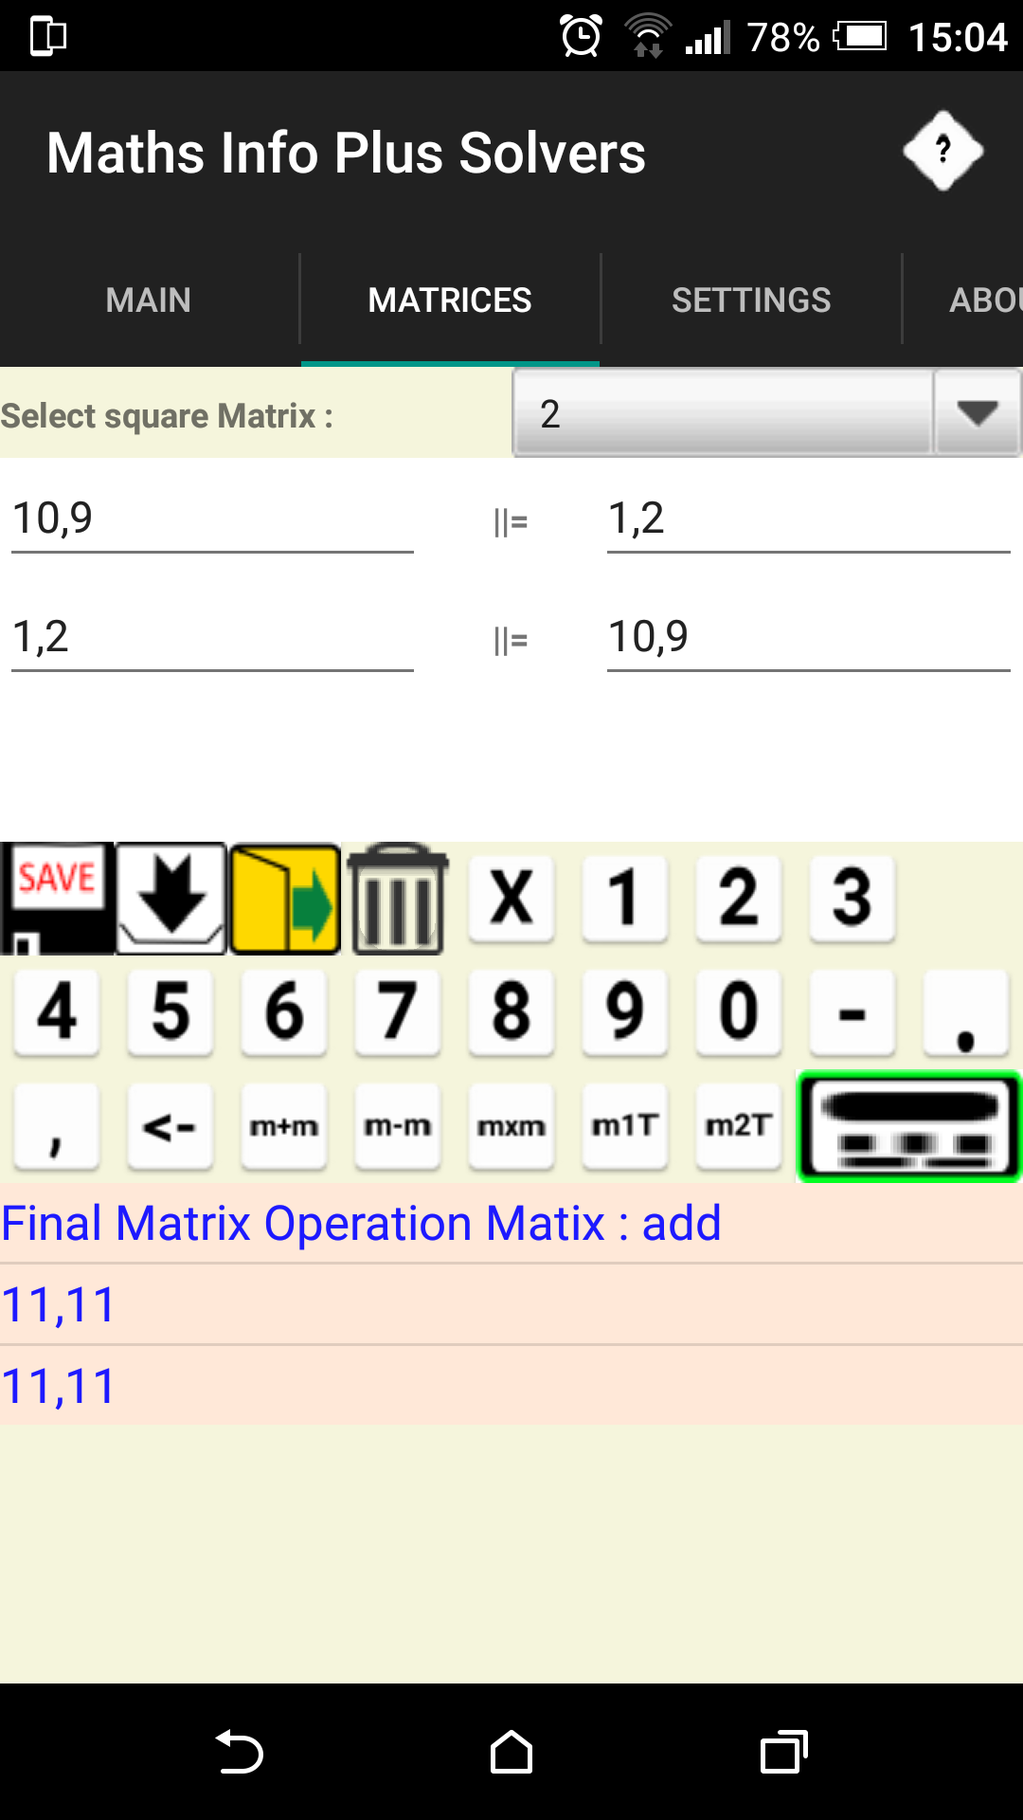 Maths Info And Solvers free Screenshot